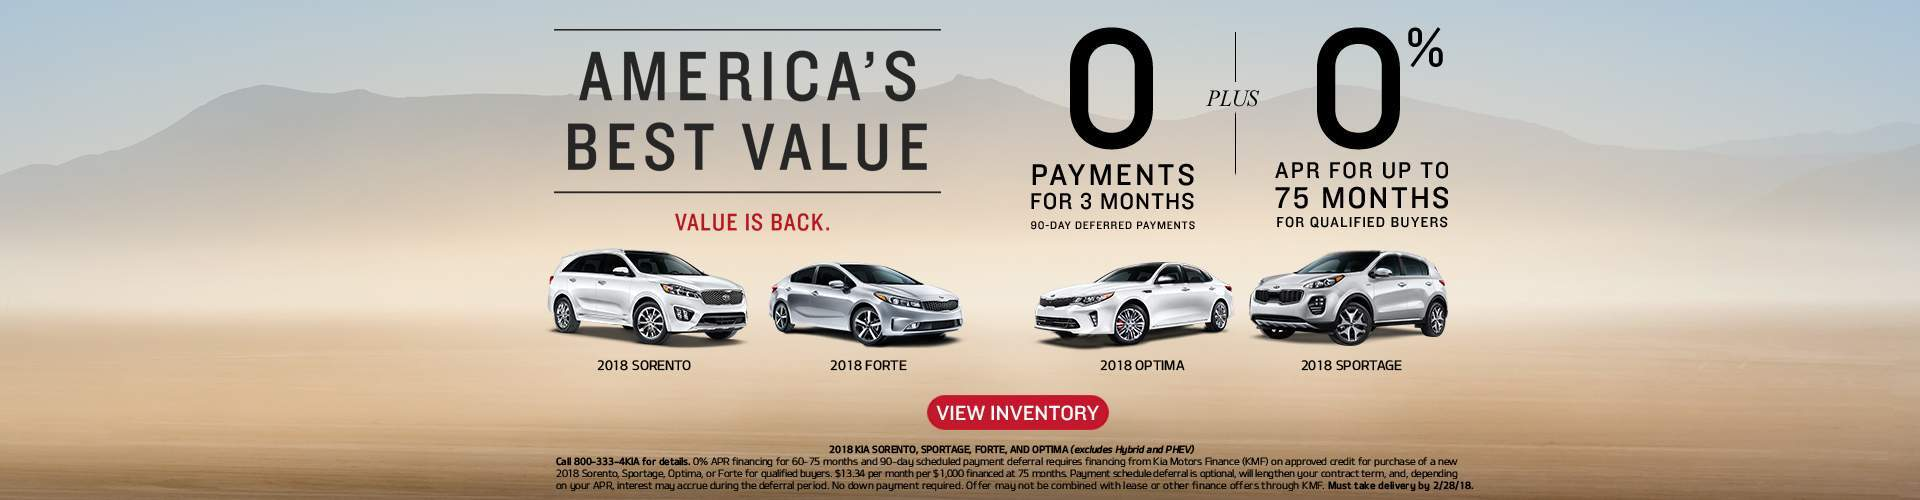 America's Best Value, Value is Back